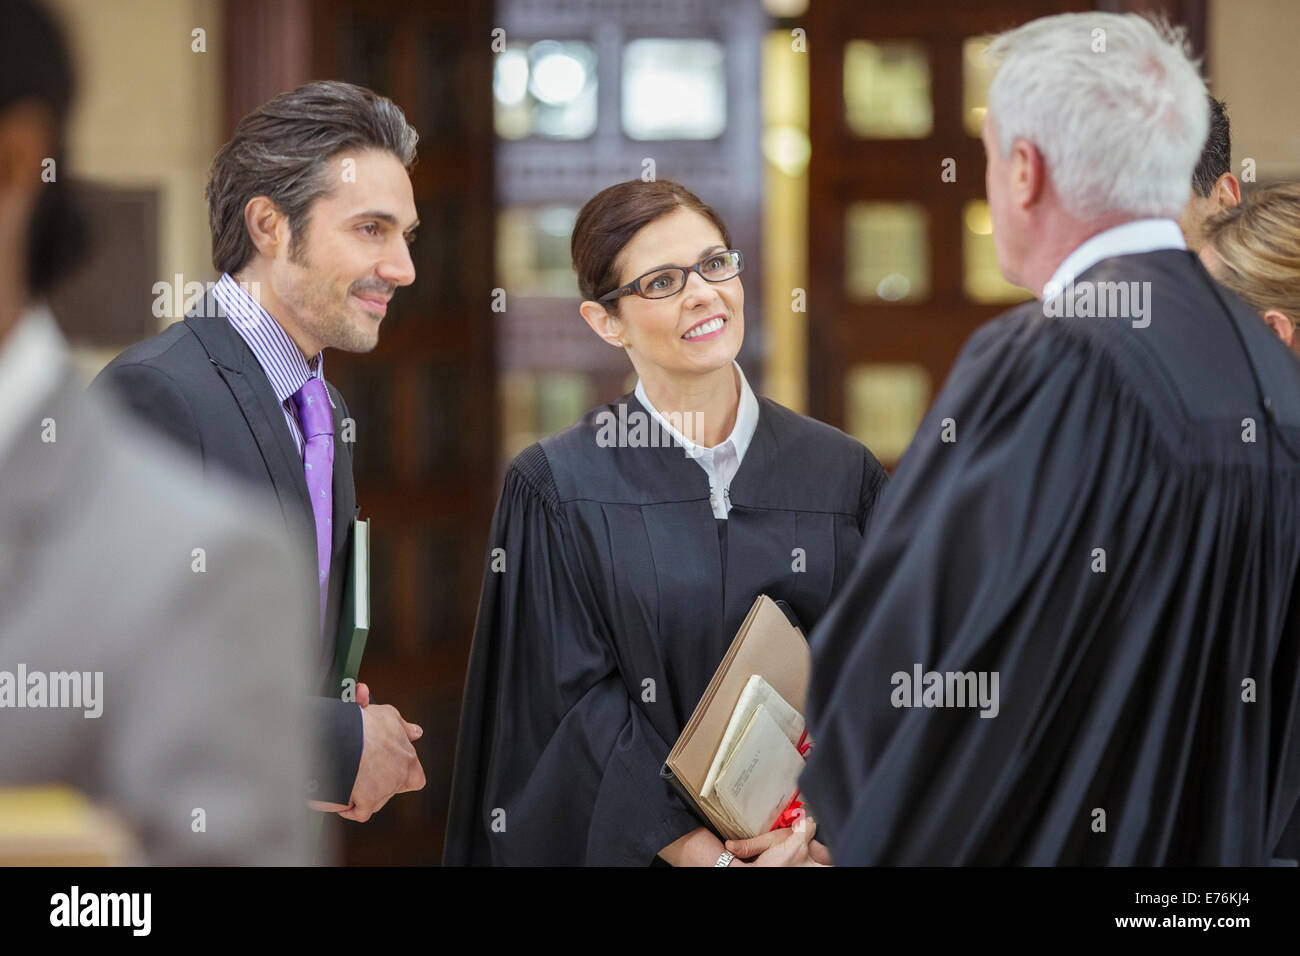 Judges and lawyers talking outside courtroom - Stock Image